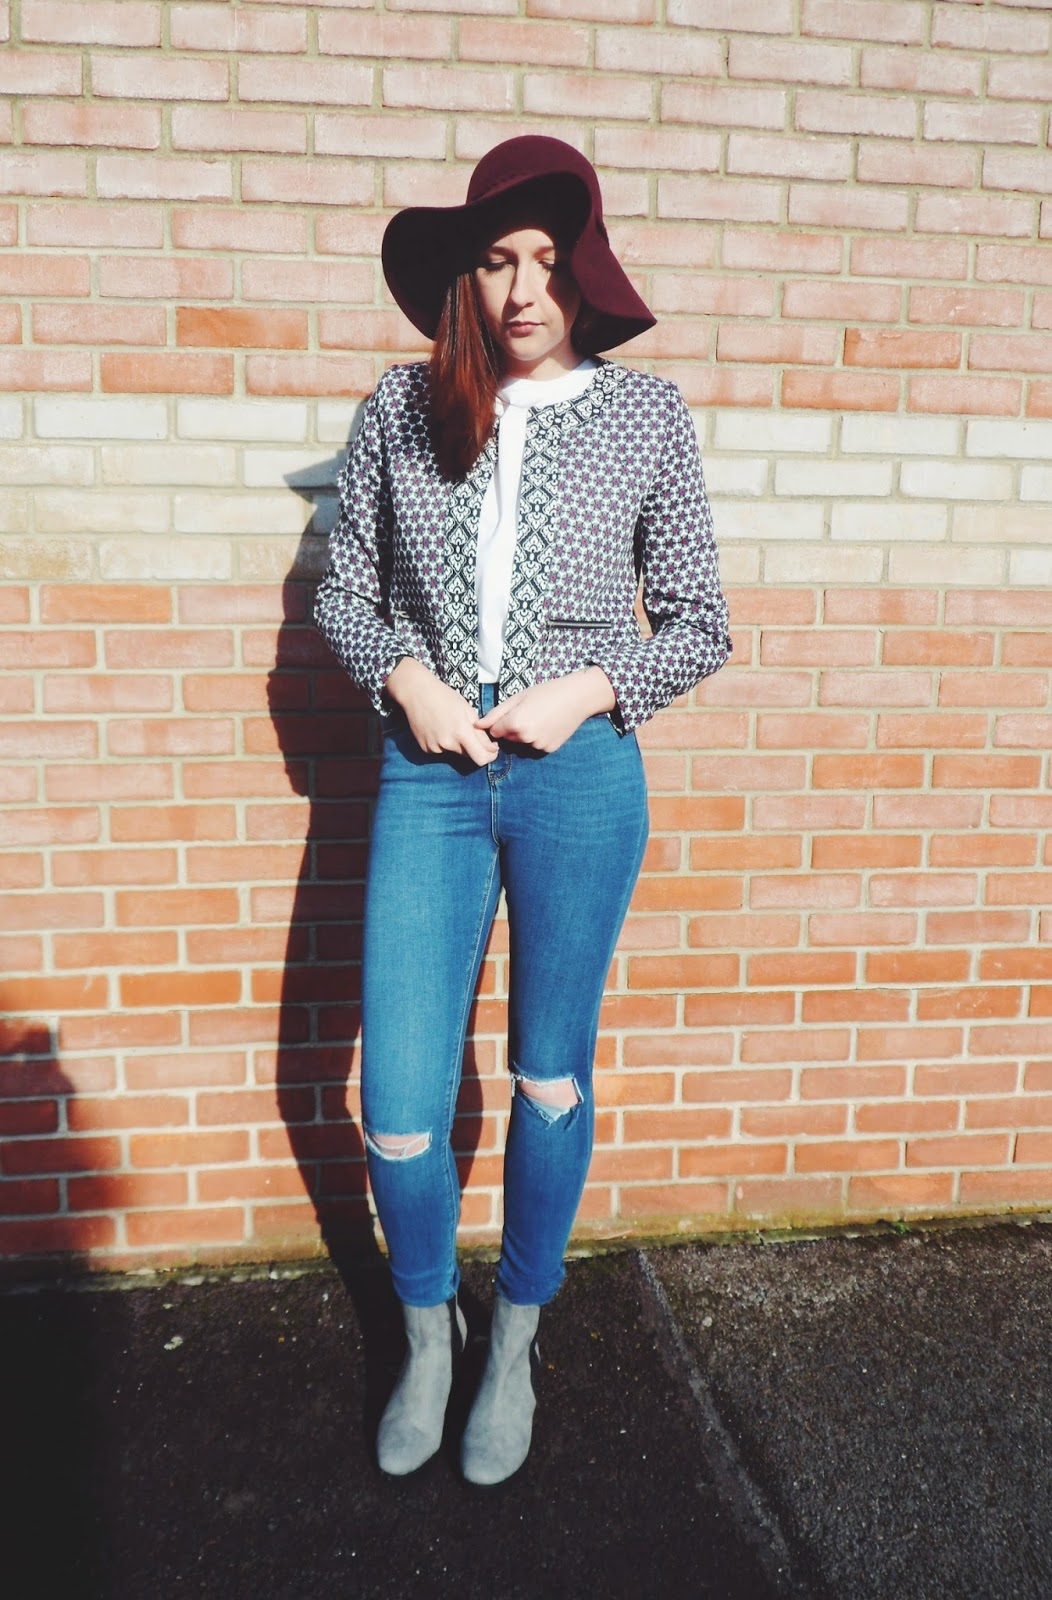 asseenonme, asos, primark, wiw, whatimwearing, whatibought, ootd, outfitoftheday,. lotd, lookoftheday, fbloggers, fashionbloggers, fblogger, seventiesfashion, theseventies, rippedjeans, boyfriendtee, cleatedheel, boots